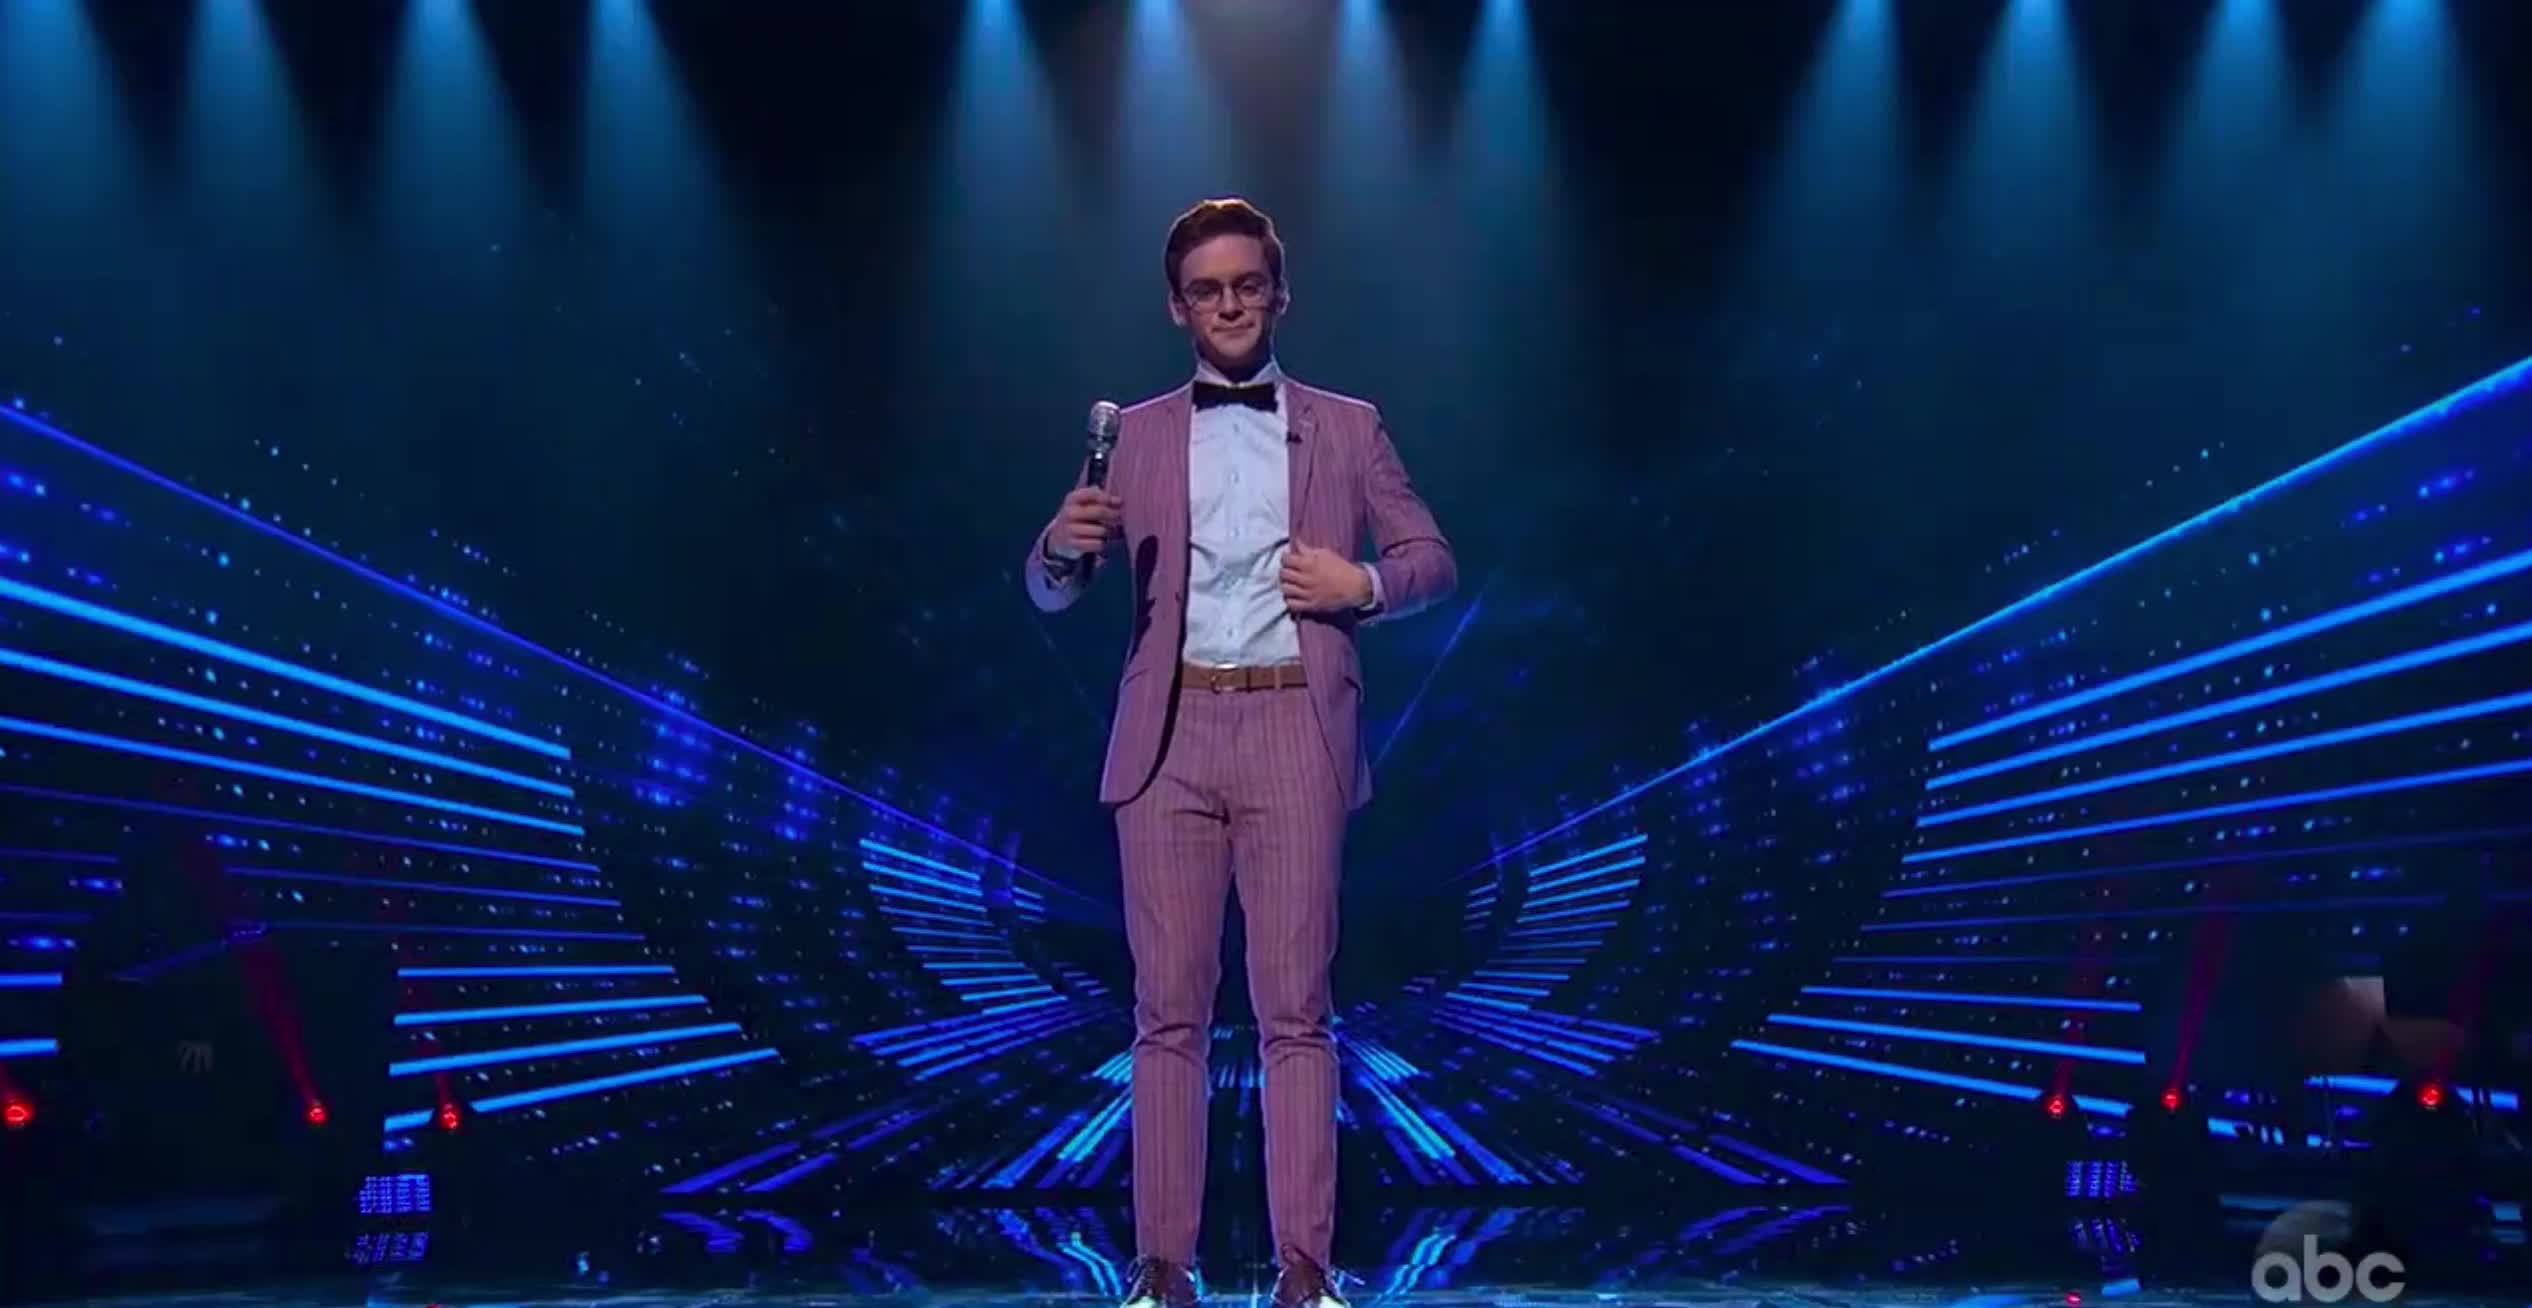 american idol, american idol season 17, americanidol, fashion, katy perry, lionel richie, luke bryan, ryan seacrest, season 17, walker burroughs, American Idol Walker Showing His Style GIFs